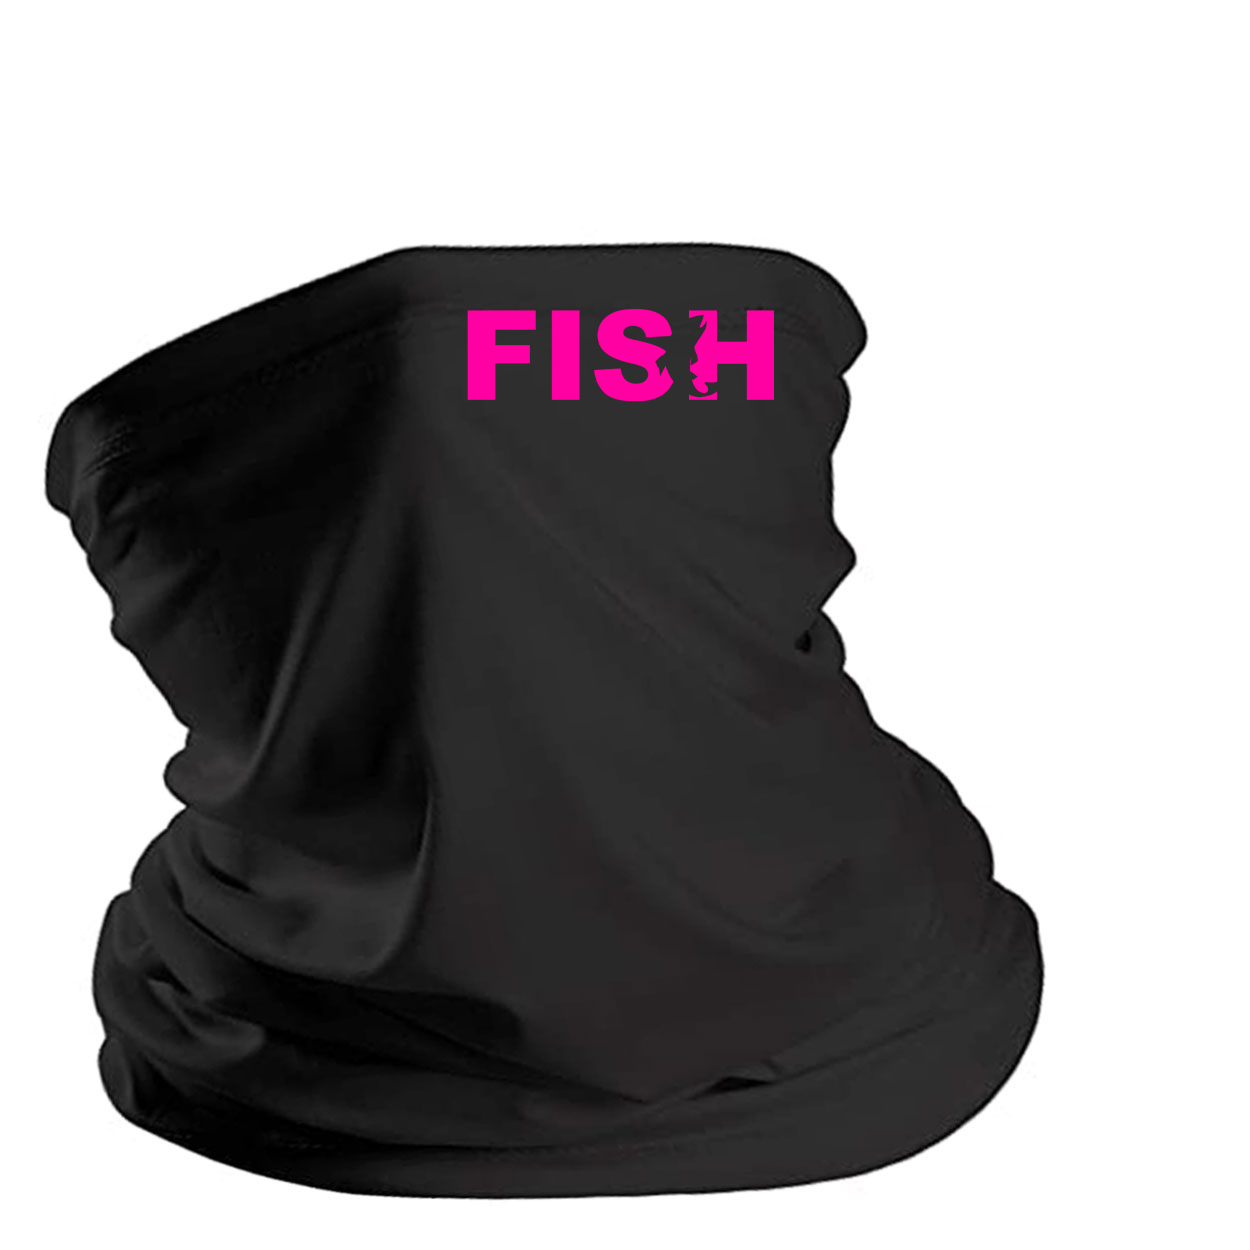 Fish Catch Logo Night Out Lightweight Neck Gaiter Face Mask Black (Pink Logo)